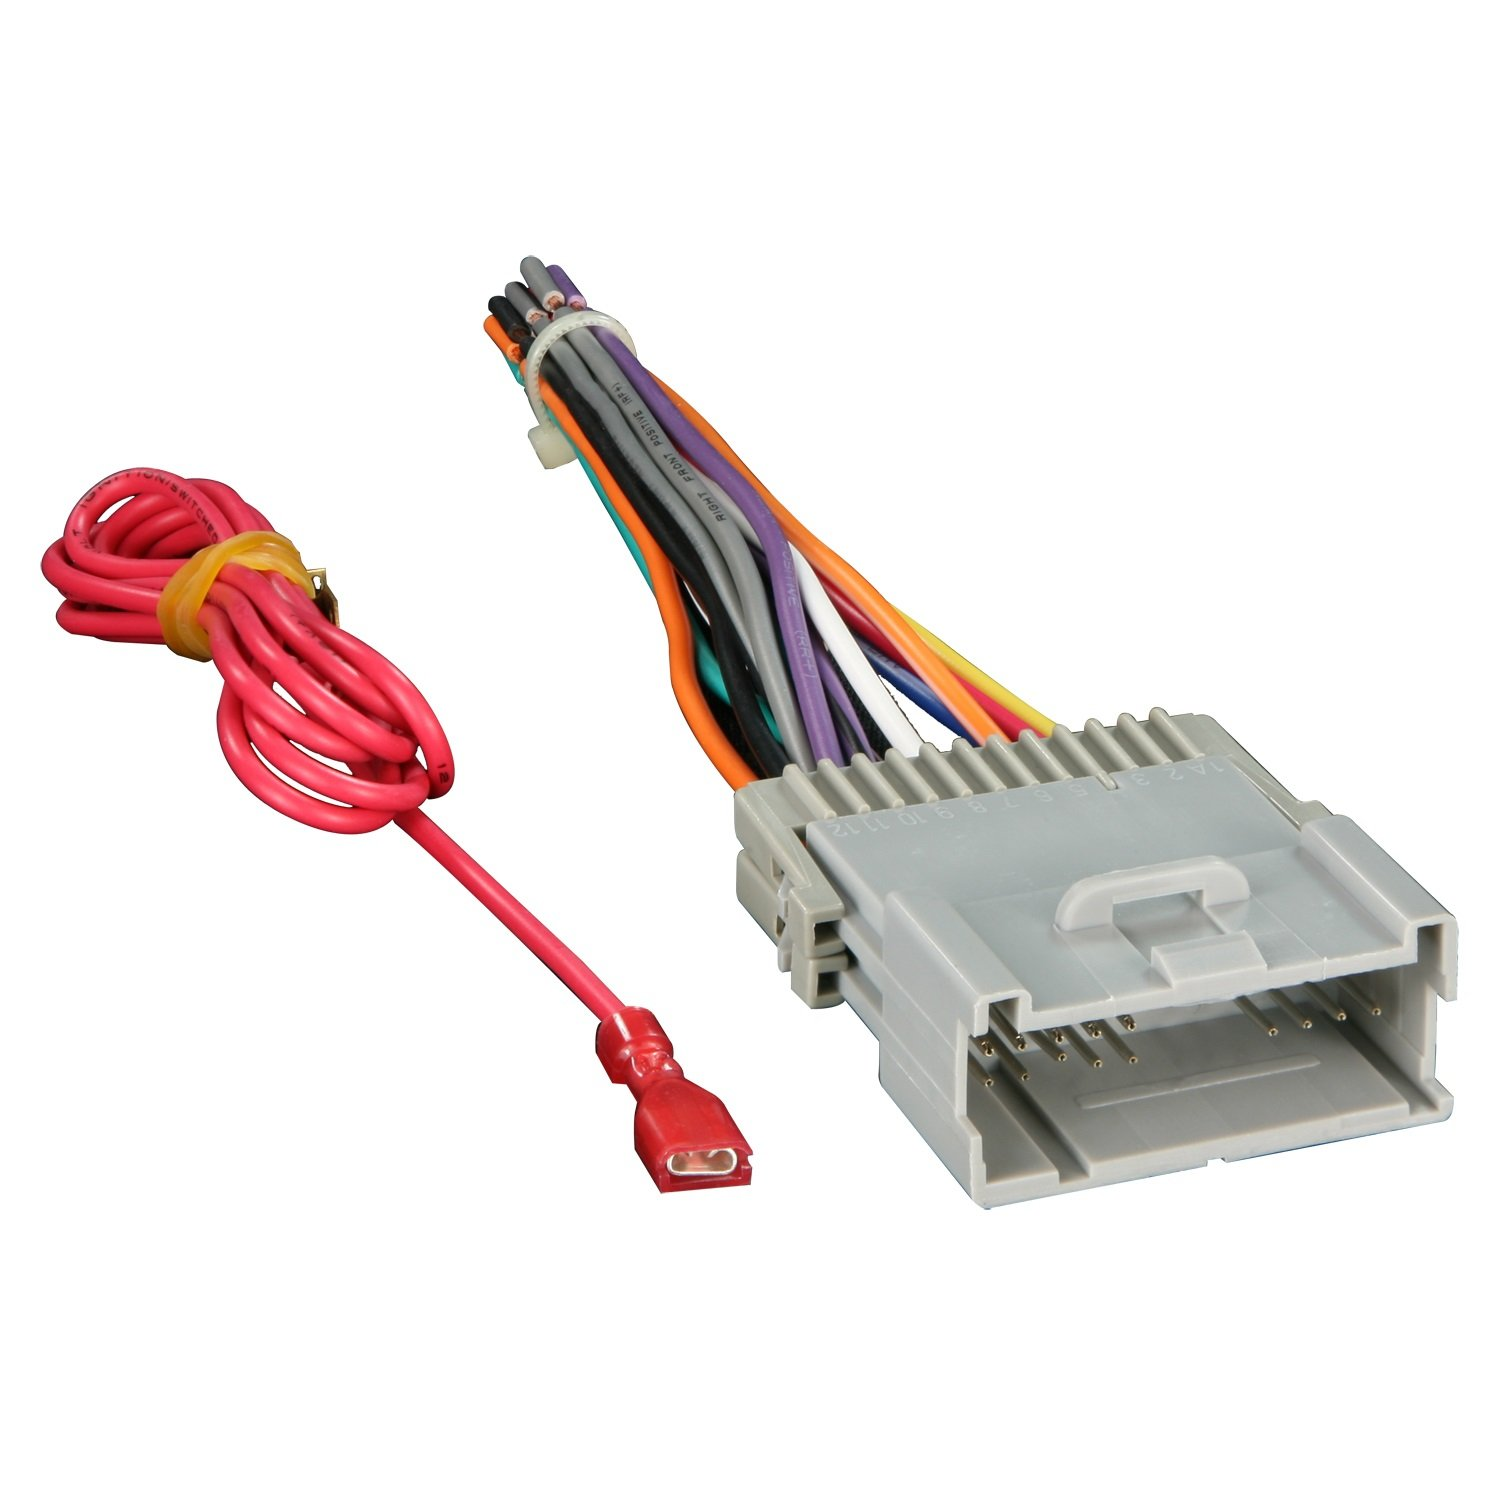 61eewxp9orL._SL1500_ amazon com metra 70 2003 radio wiring harness for gm 98 08 auto radio wiring harness at reclaimingppi.co